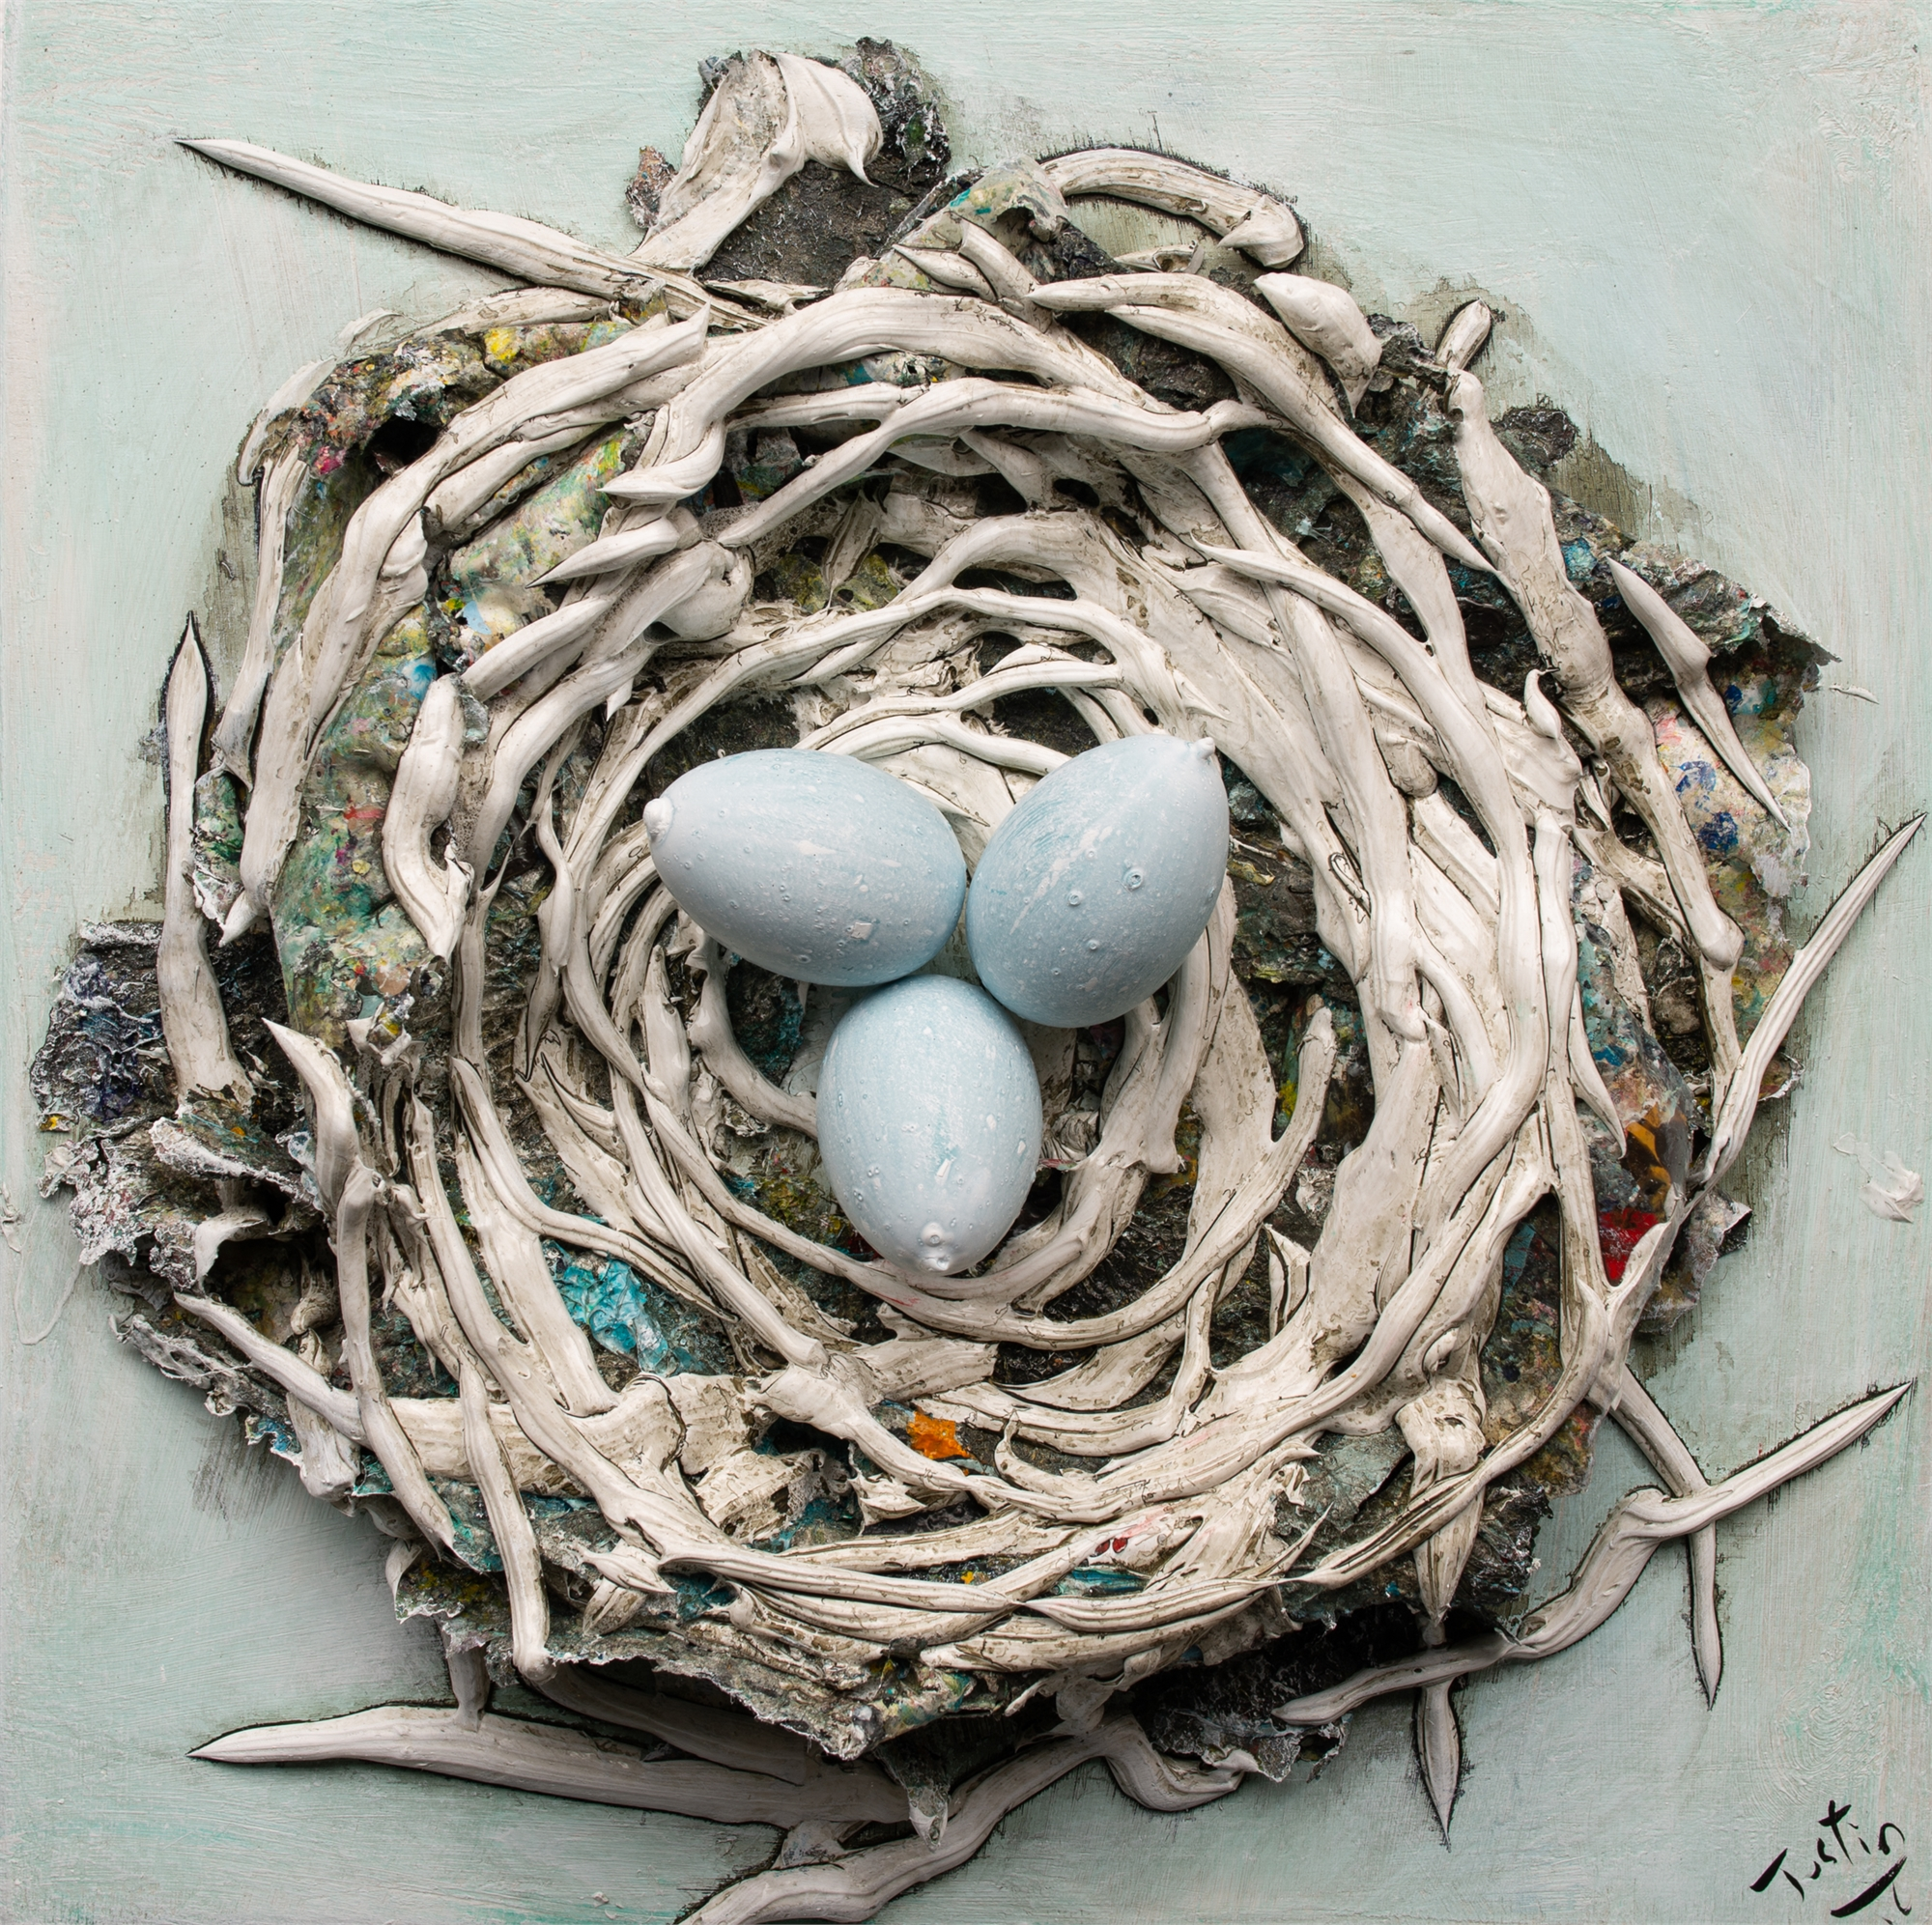 (SOLD) NEST NS-16x16-2019-263 by JUSTIN GAFFREY